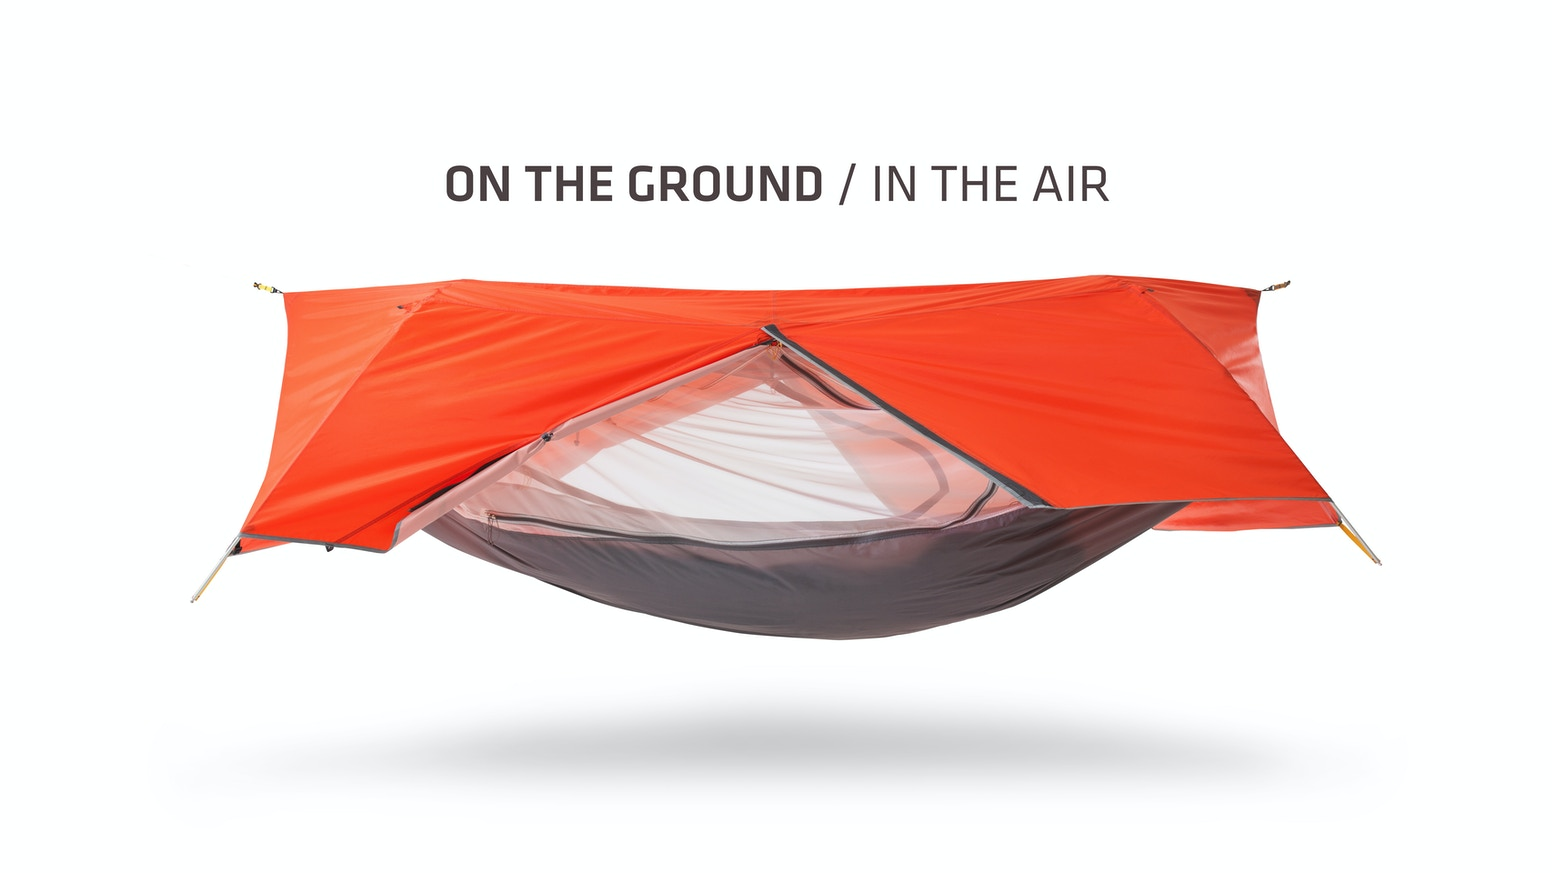 Clean design meets complete versatility. The Sunda is a game-changing tent hammock, designed for any occasion, any terrain, any time.